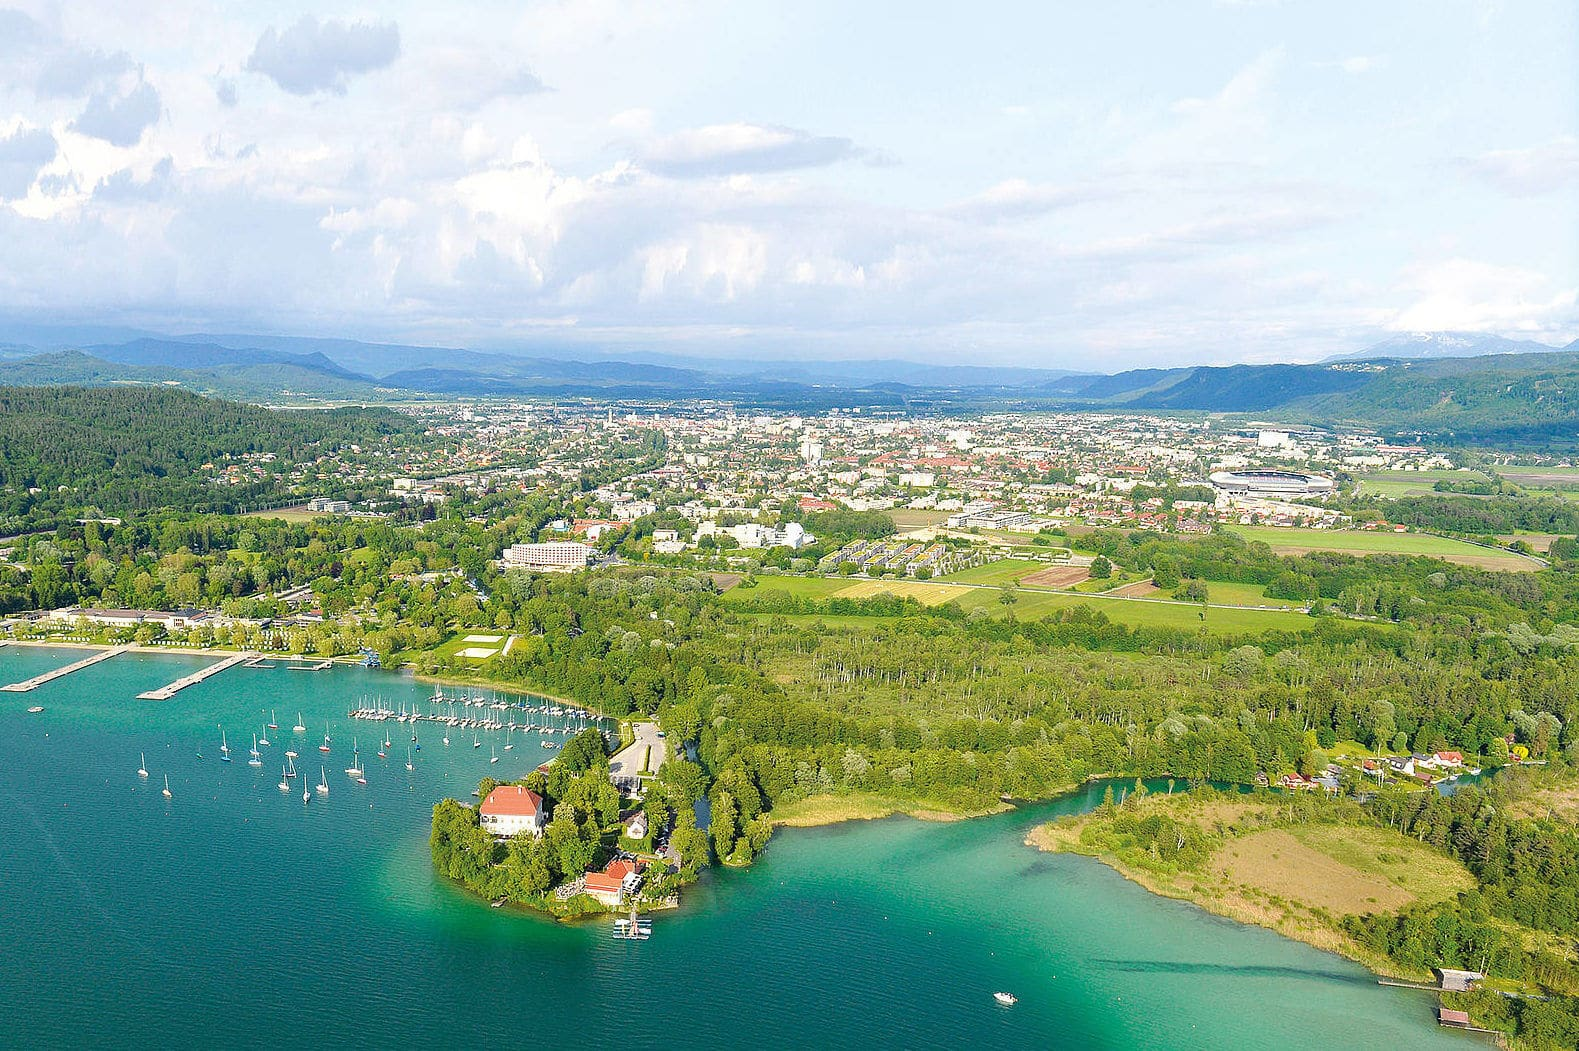 trainingslager_am_woerthersee_view